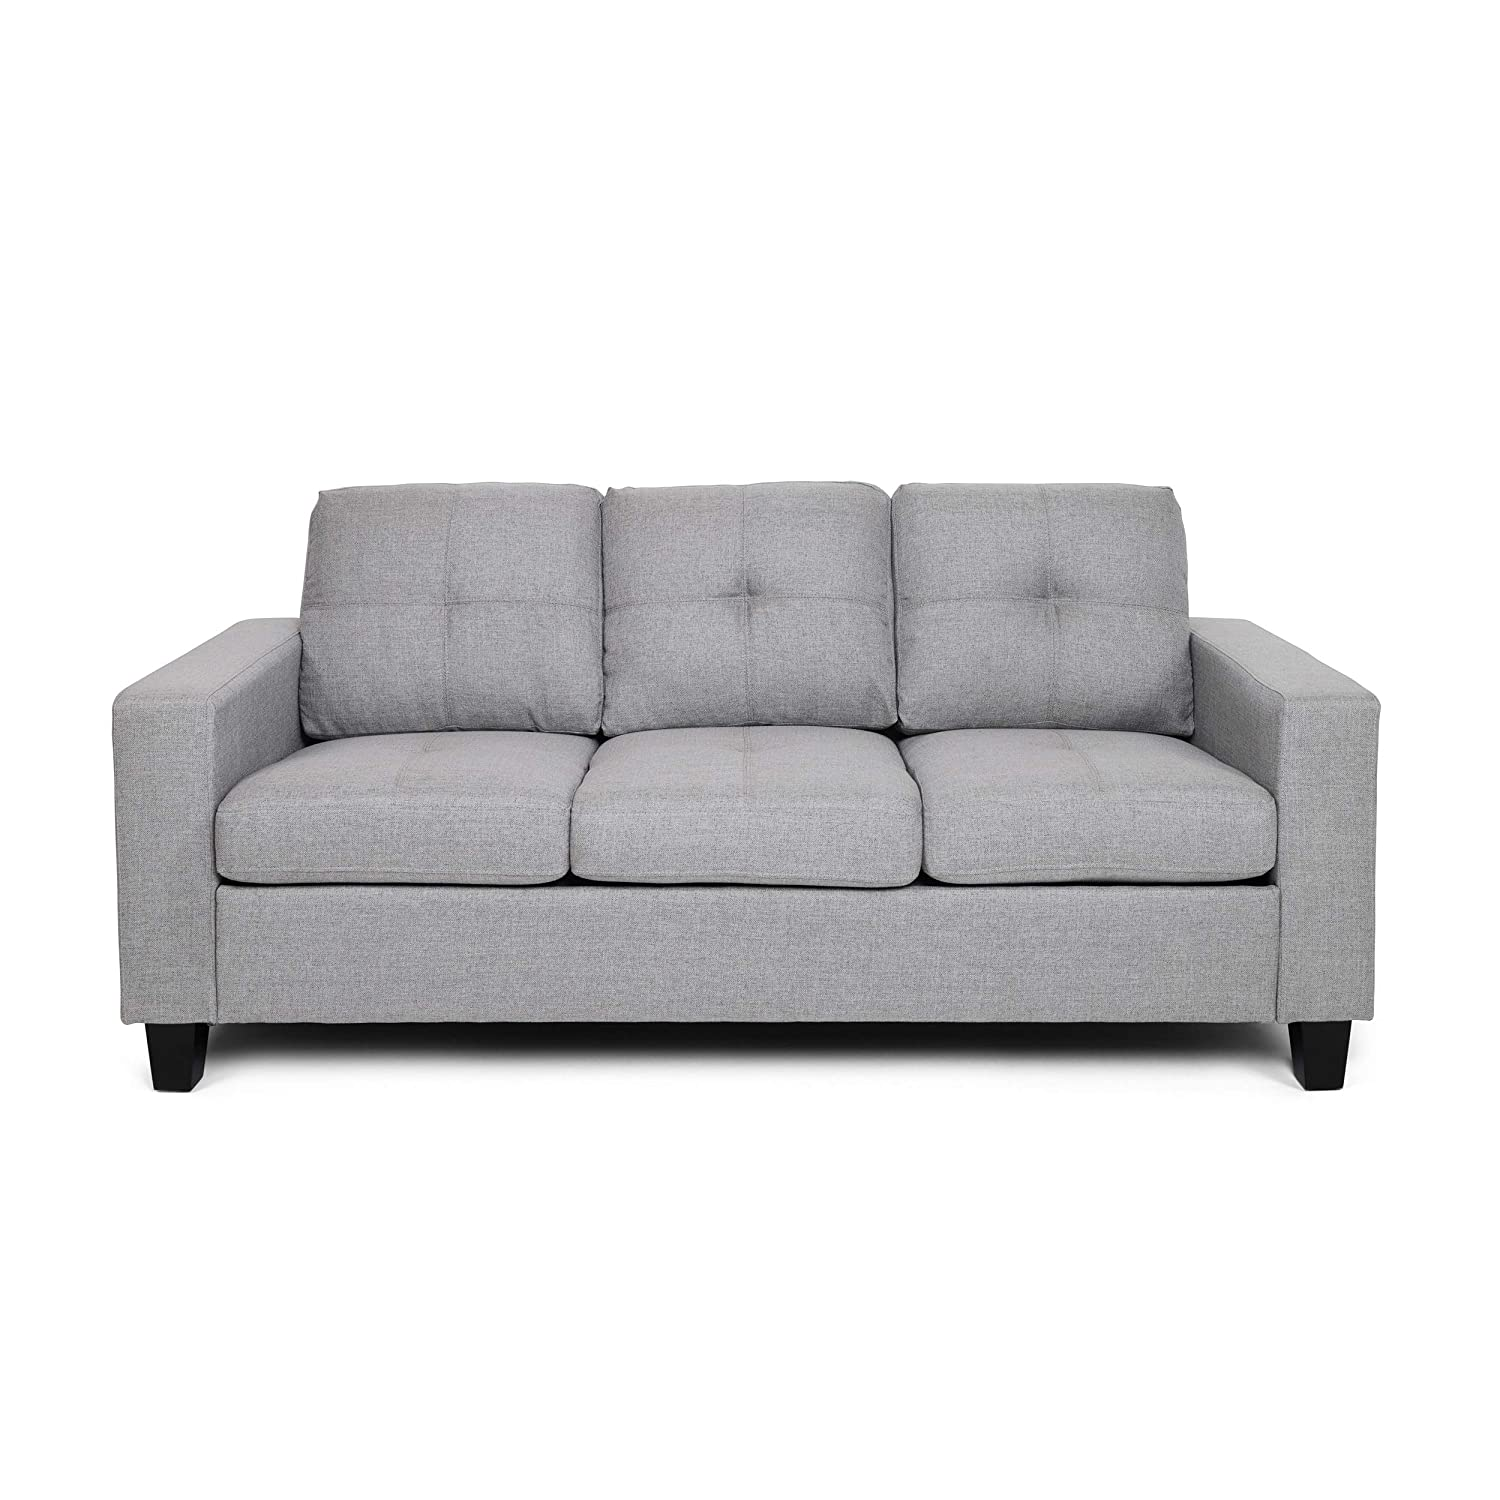 Amazon.com: Christopher Knight Home Viviana Three Seater ...